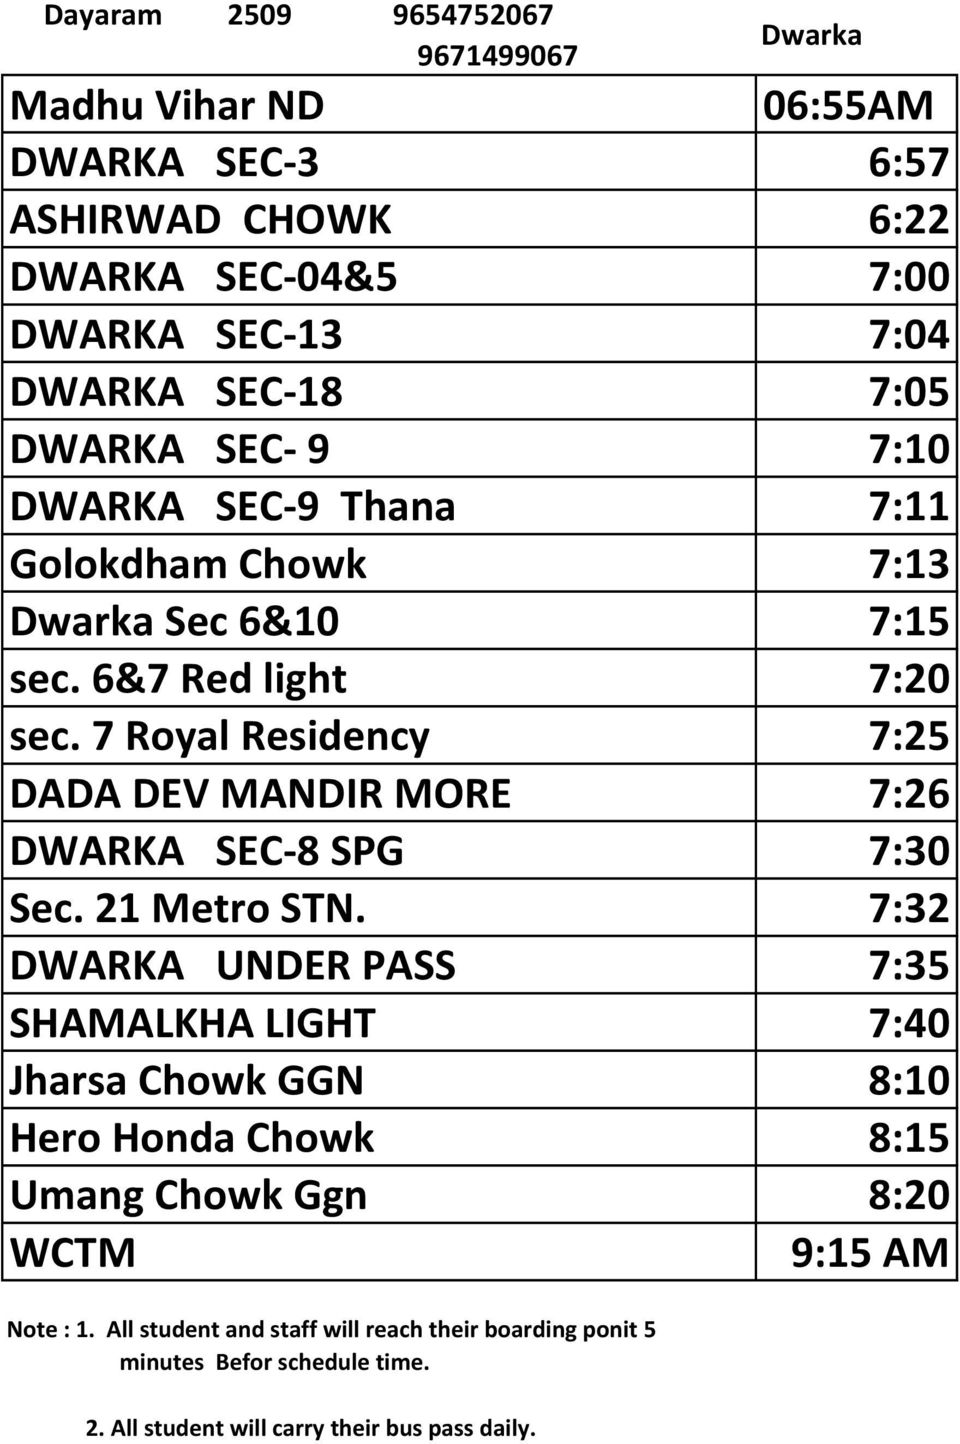 6&10 7:15 sec. 6&7 Red light 7:20 sec. 7 Royal Residency 7:25 DADA DEV MANDIR MORE 7:26 DWARKA SEC 8 SPG 7:30 Sec.